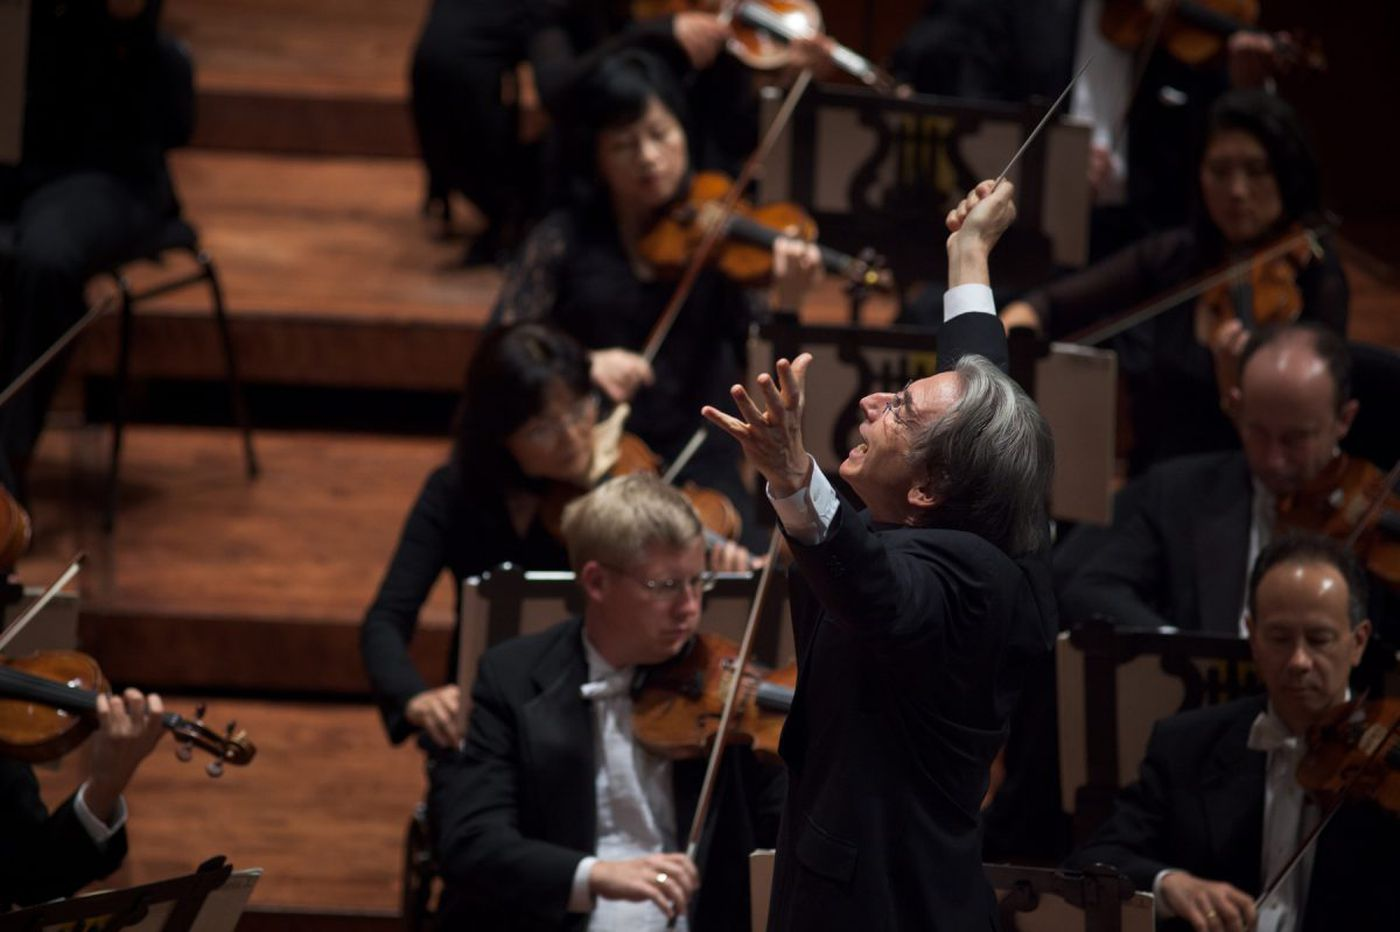 In 'greatest nation,' Michael Tilson Thomas and Carl Sandburg join across the decades